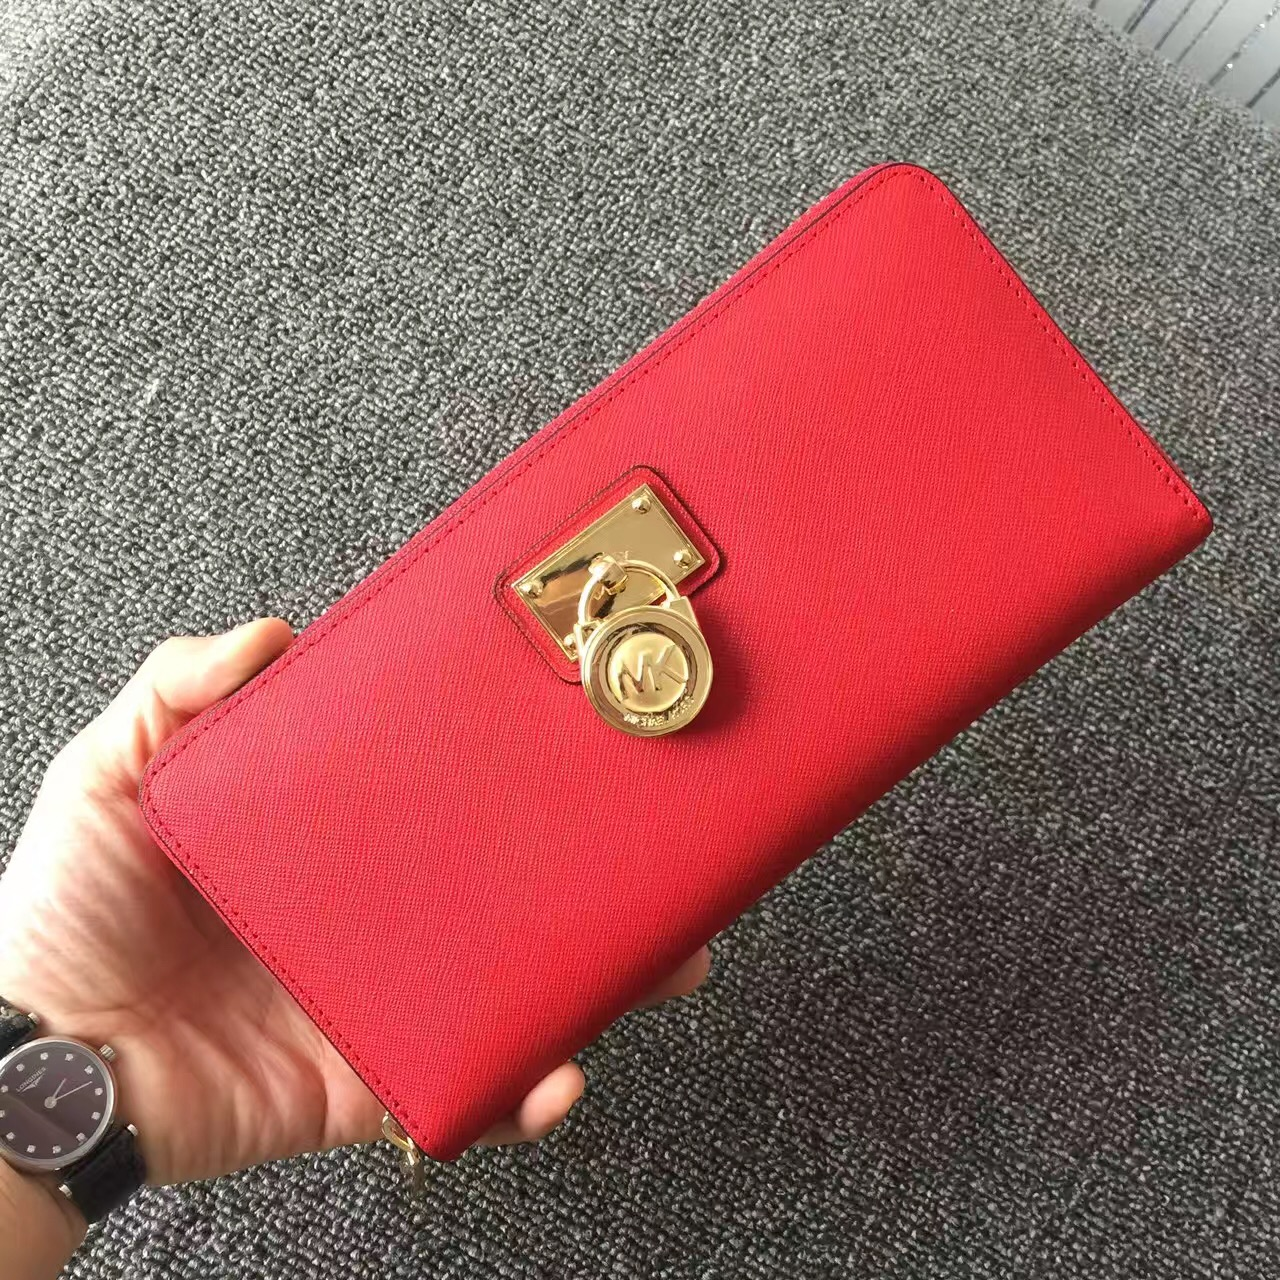 2017 New Michael Kors Lock Women Small Wallets Red